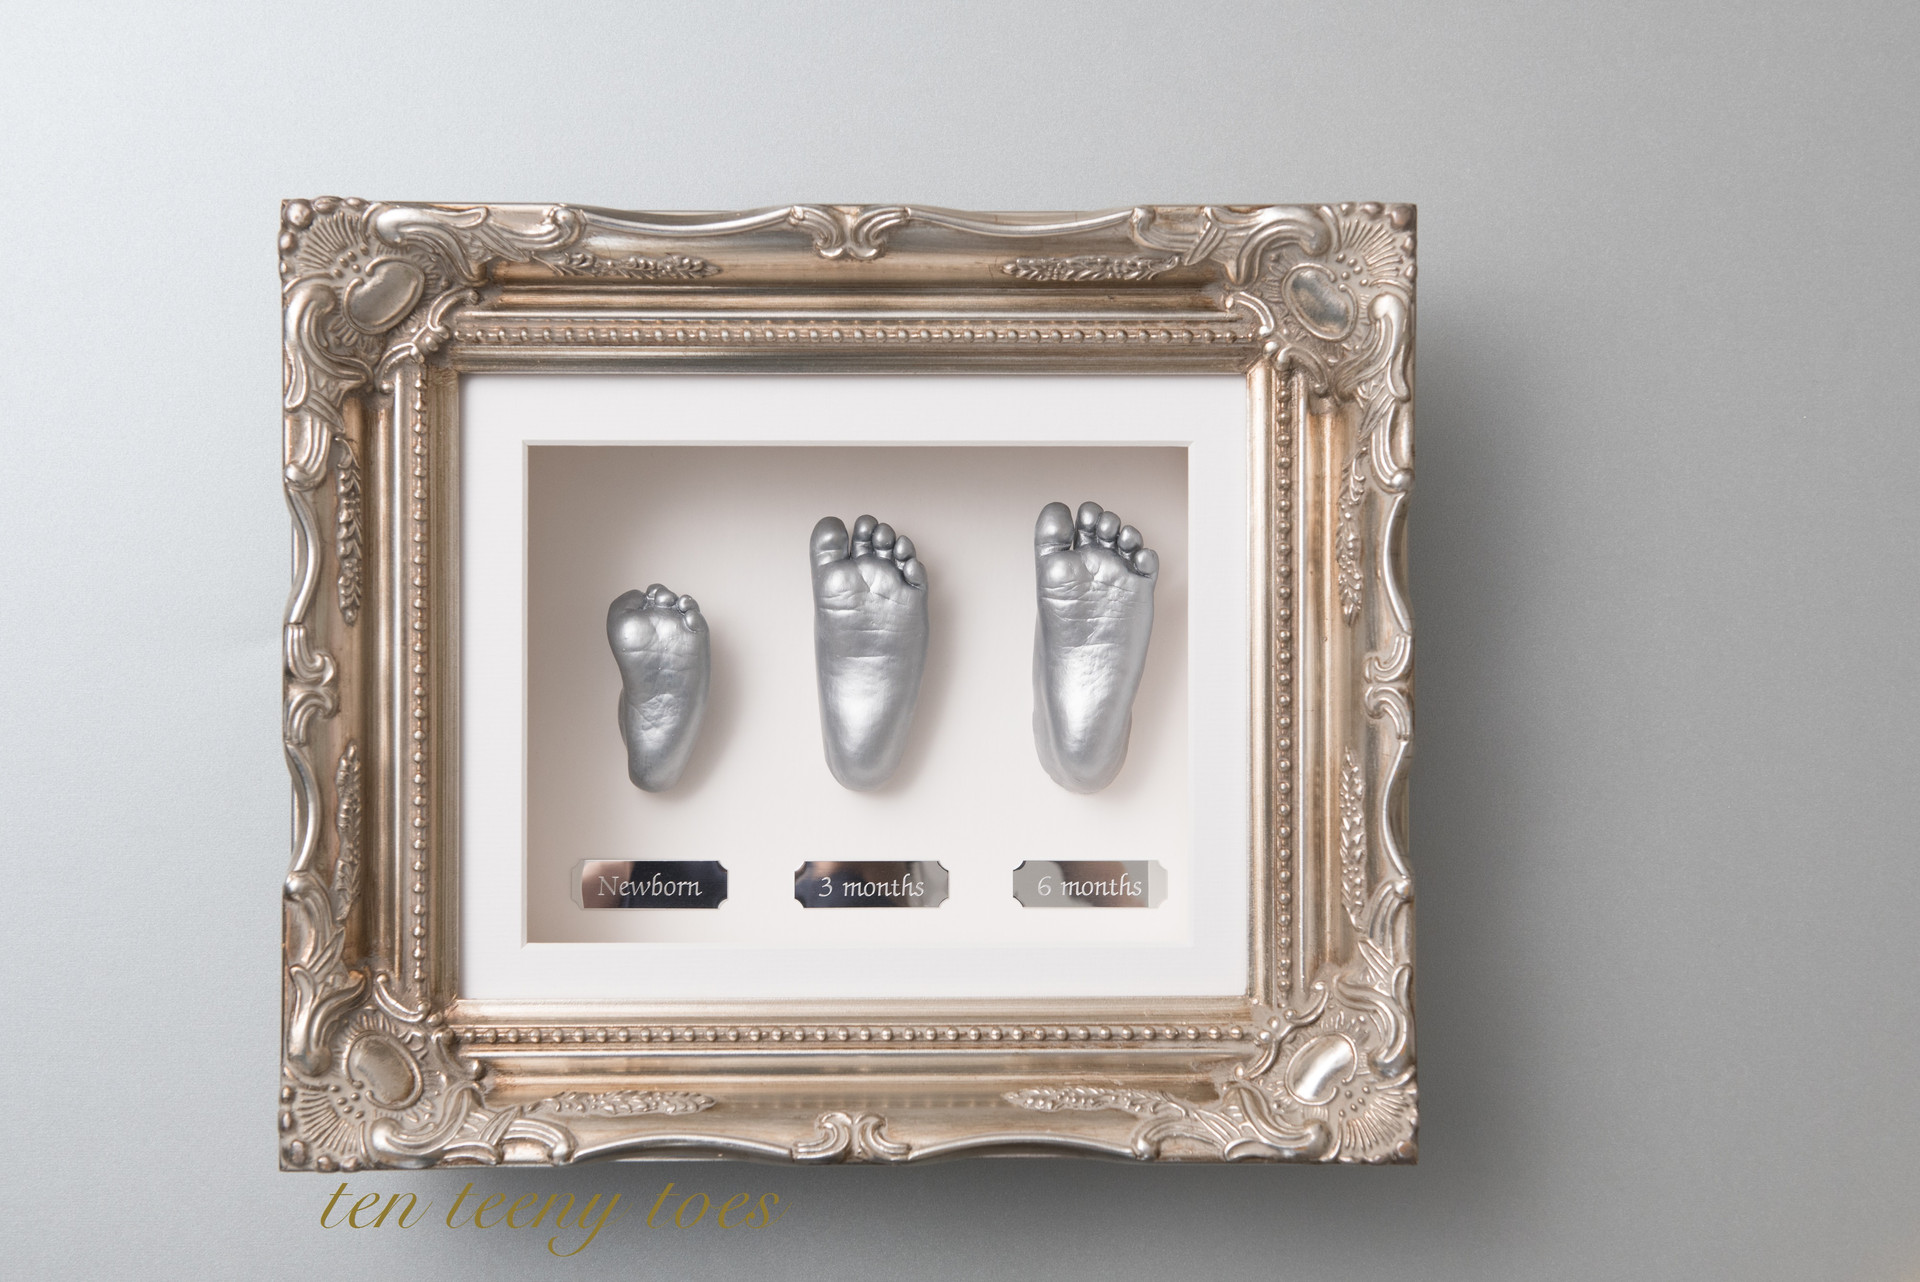 Three silver feet casts at newborn, three months and six months in a platinum vintage frame.